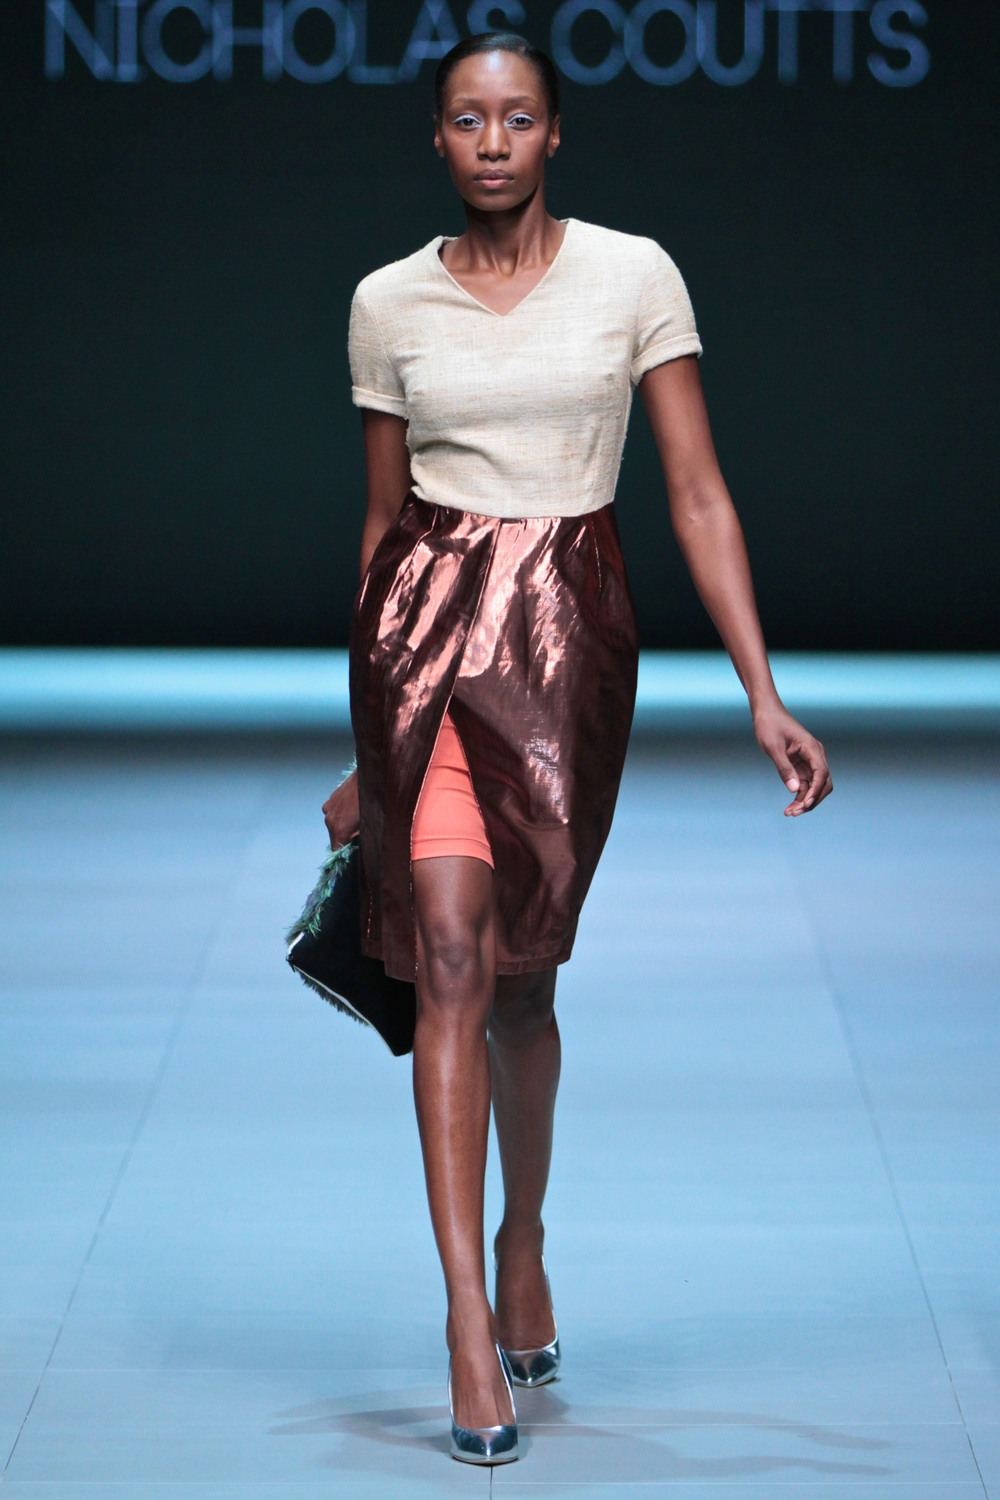 14_MBFWCT_SDR_0460_NicholasCoutts.jpg